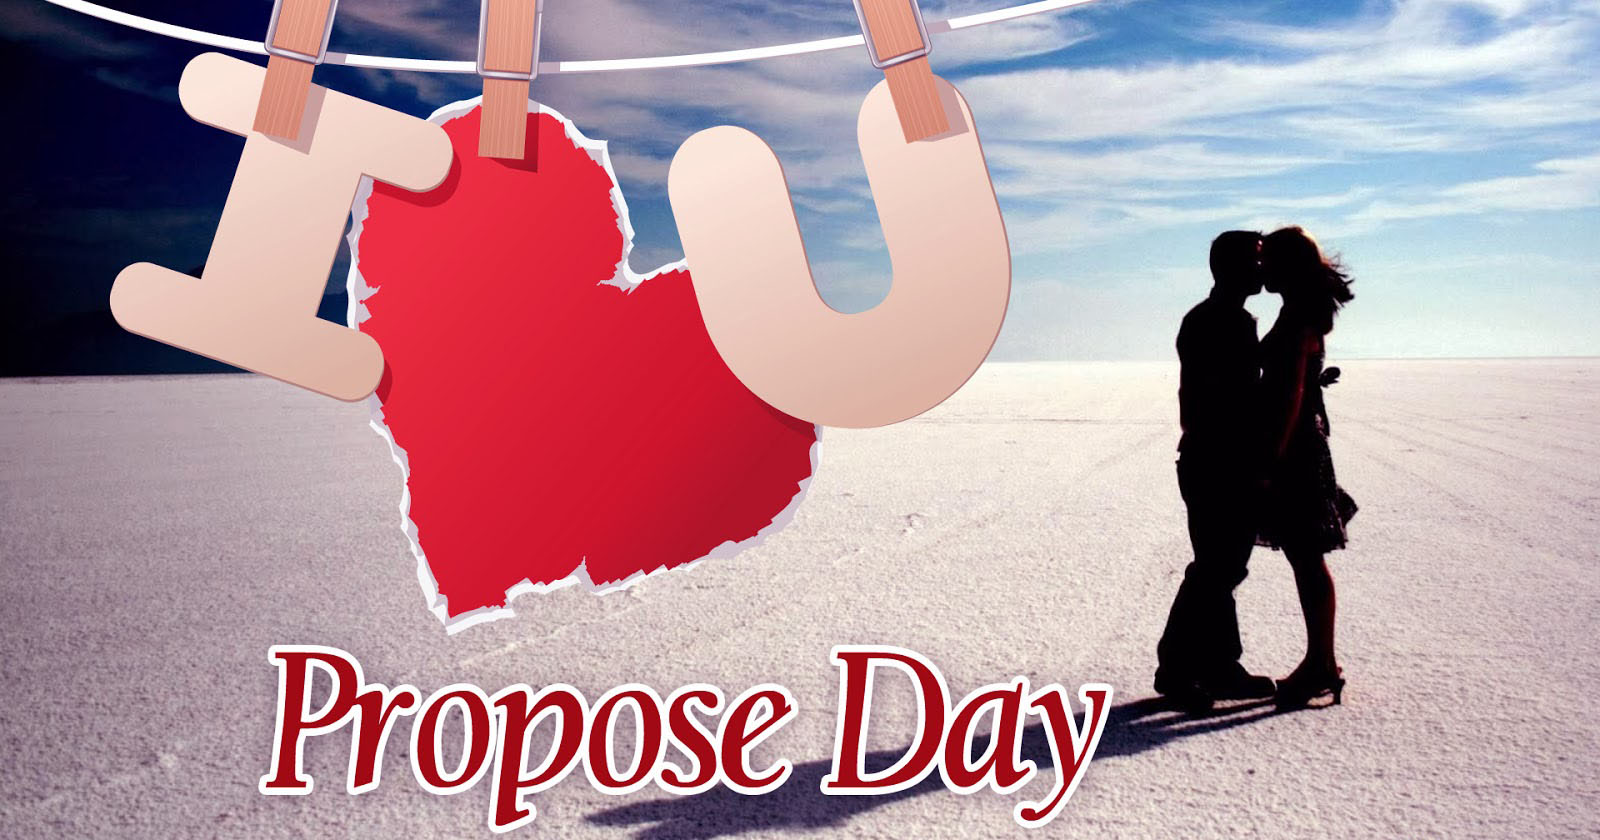 Happy Propose Day Quotes1